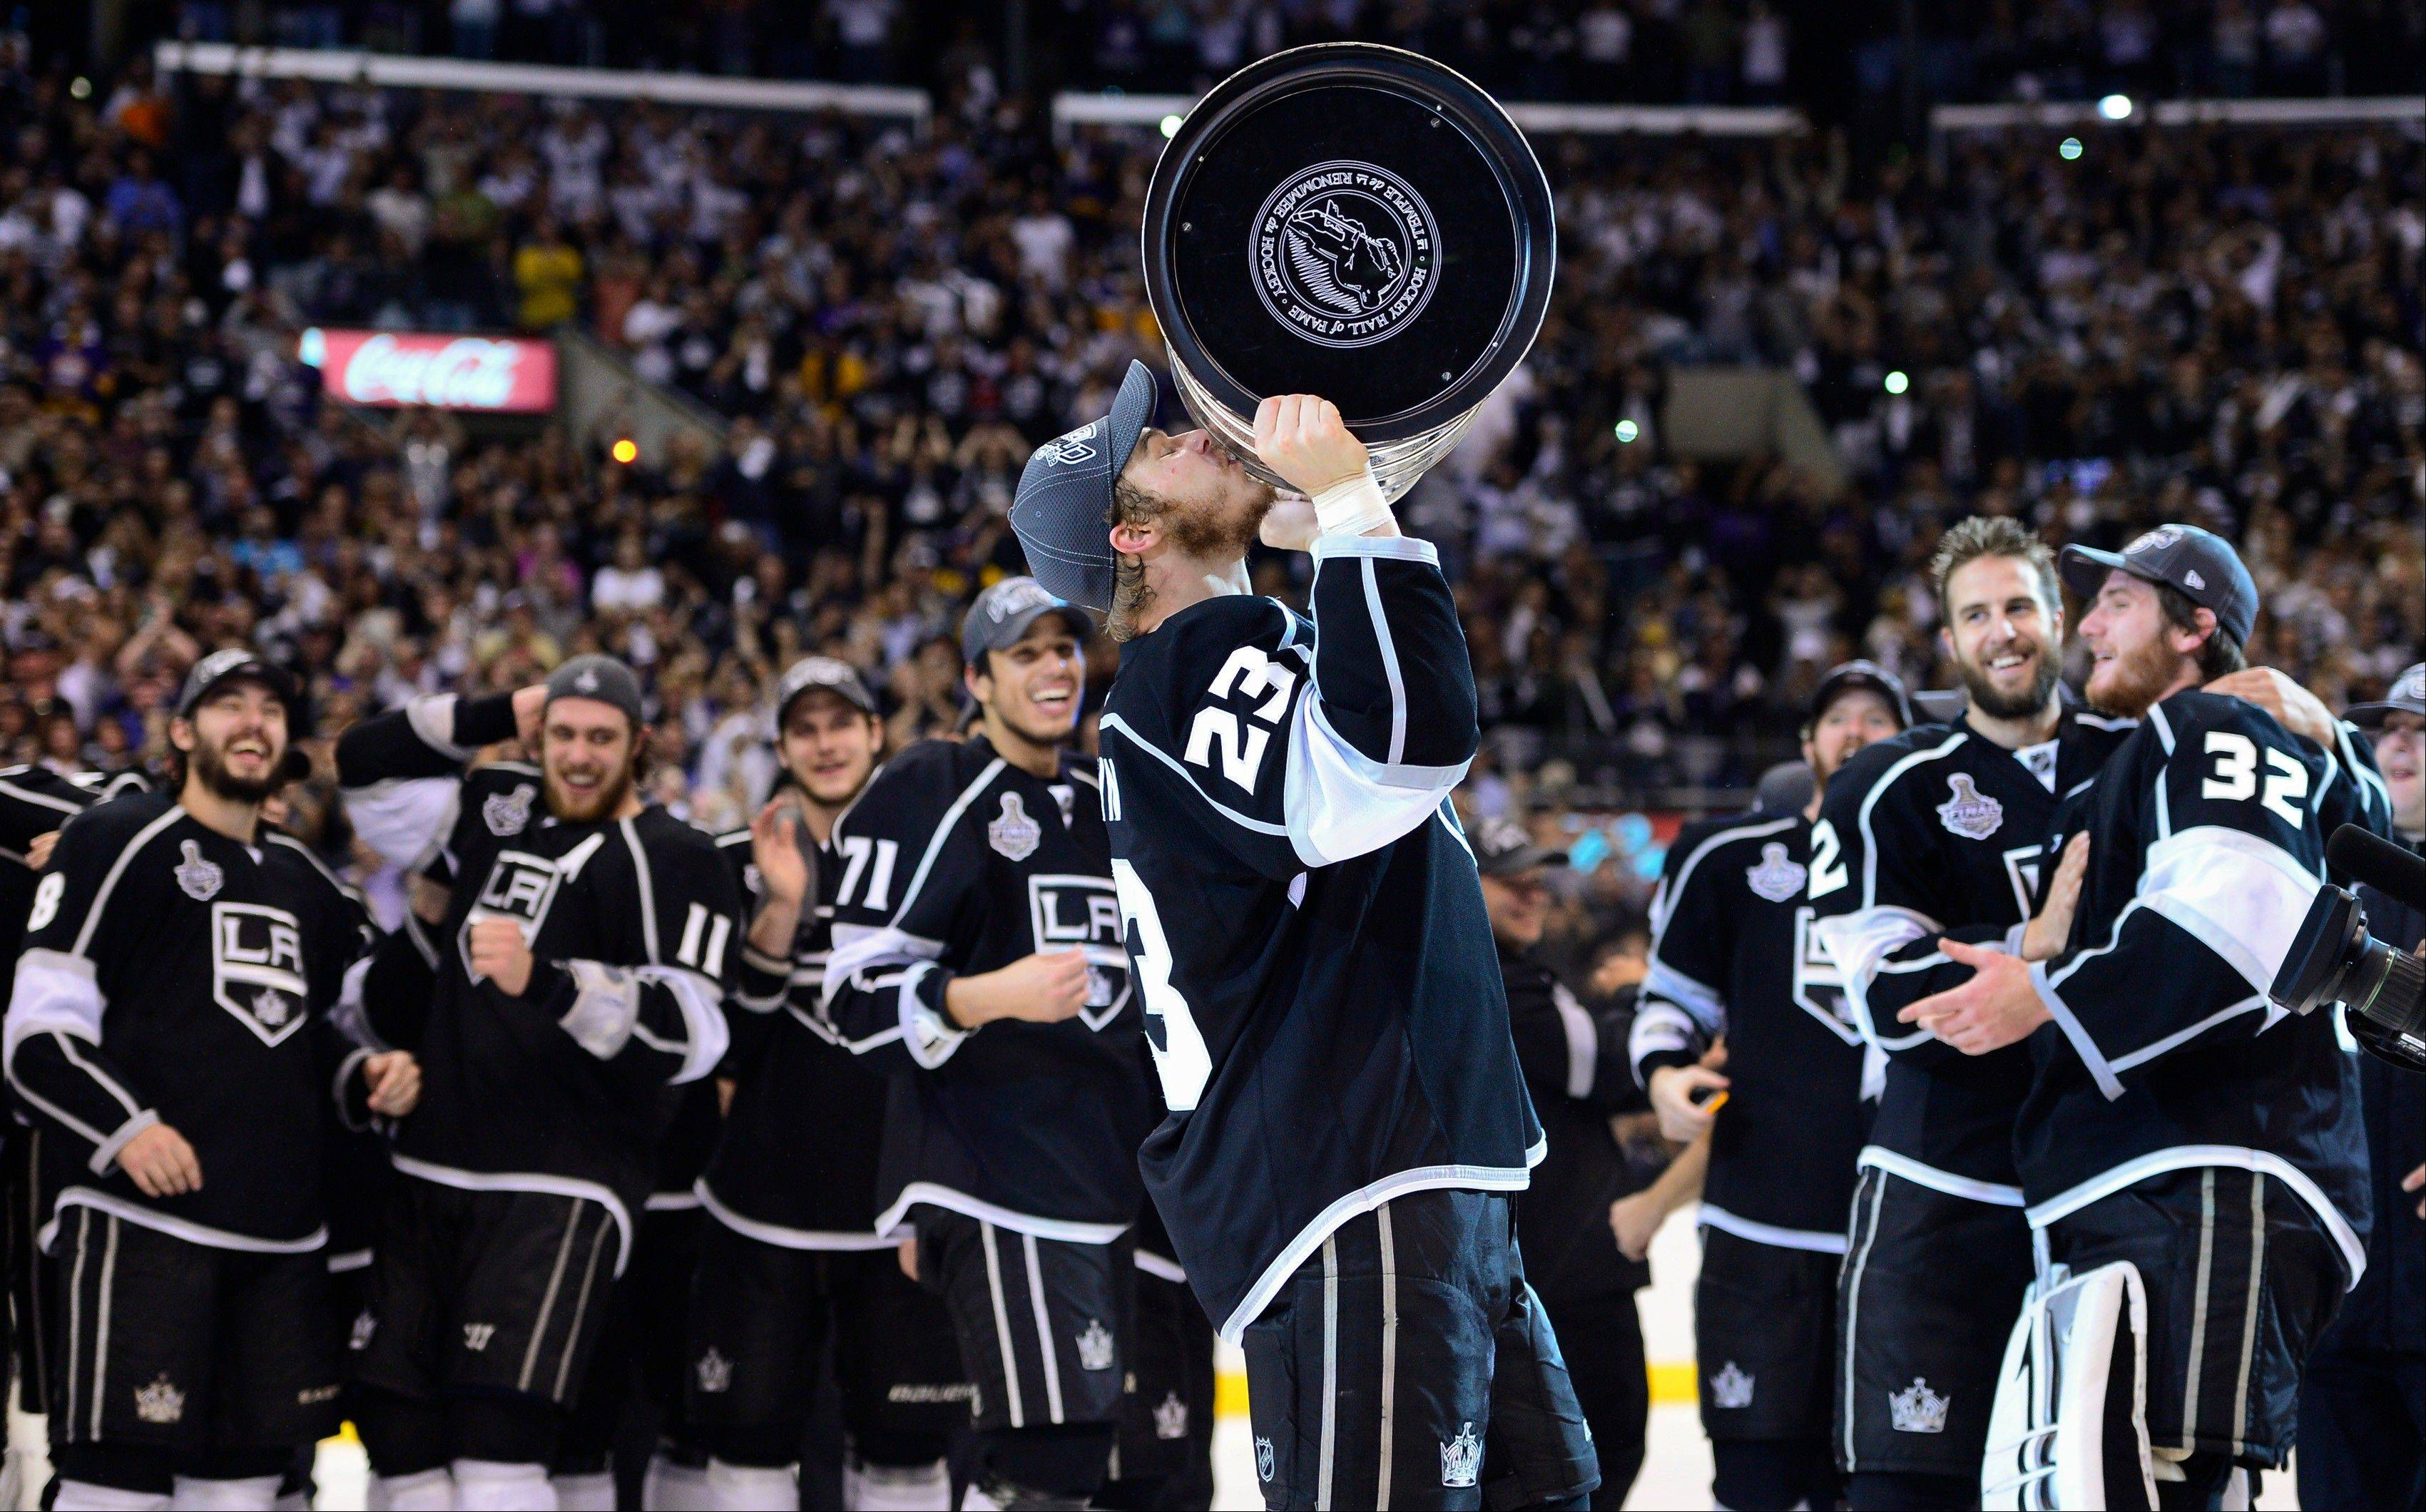 Los Angeles Kings captain Dustin Brown kisses the Stanley Cup Monday after the Kings beat the New Jersey Devils 6-1.